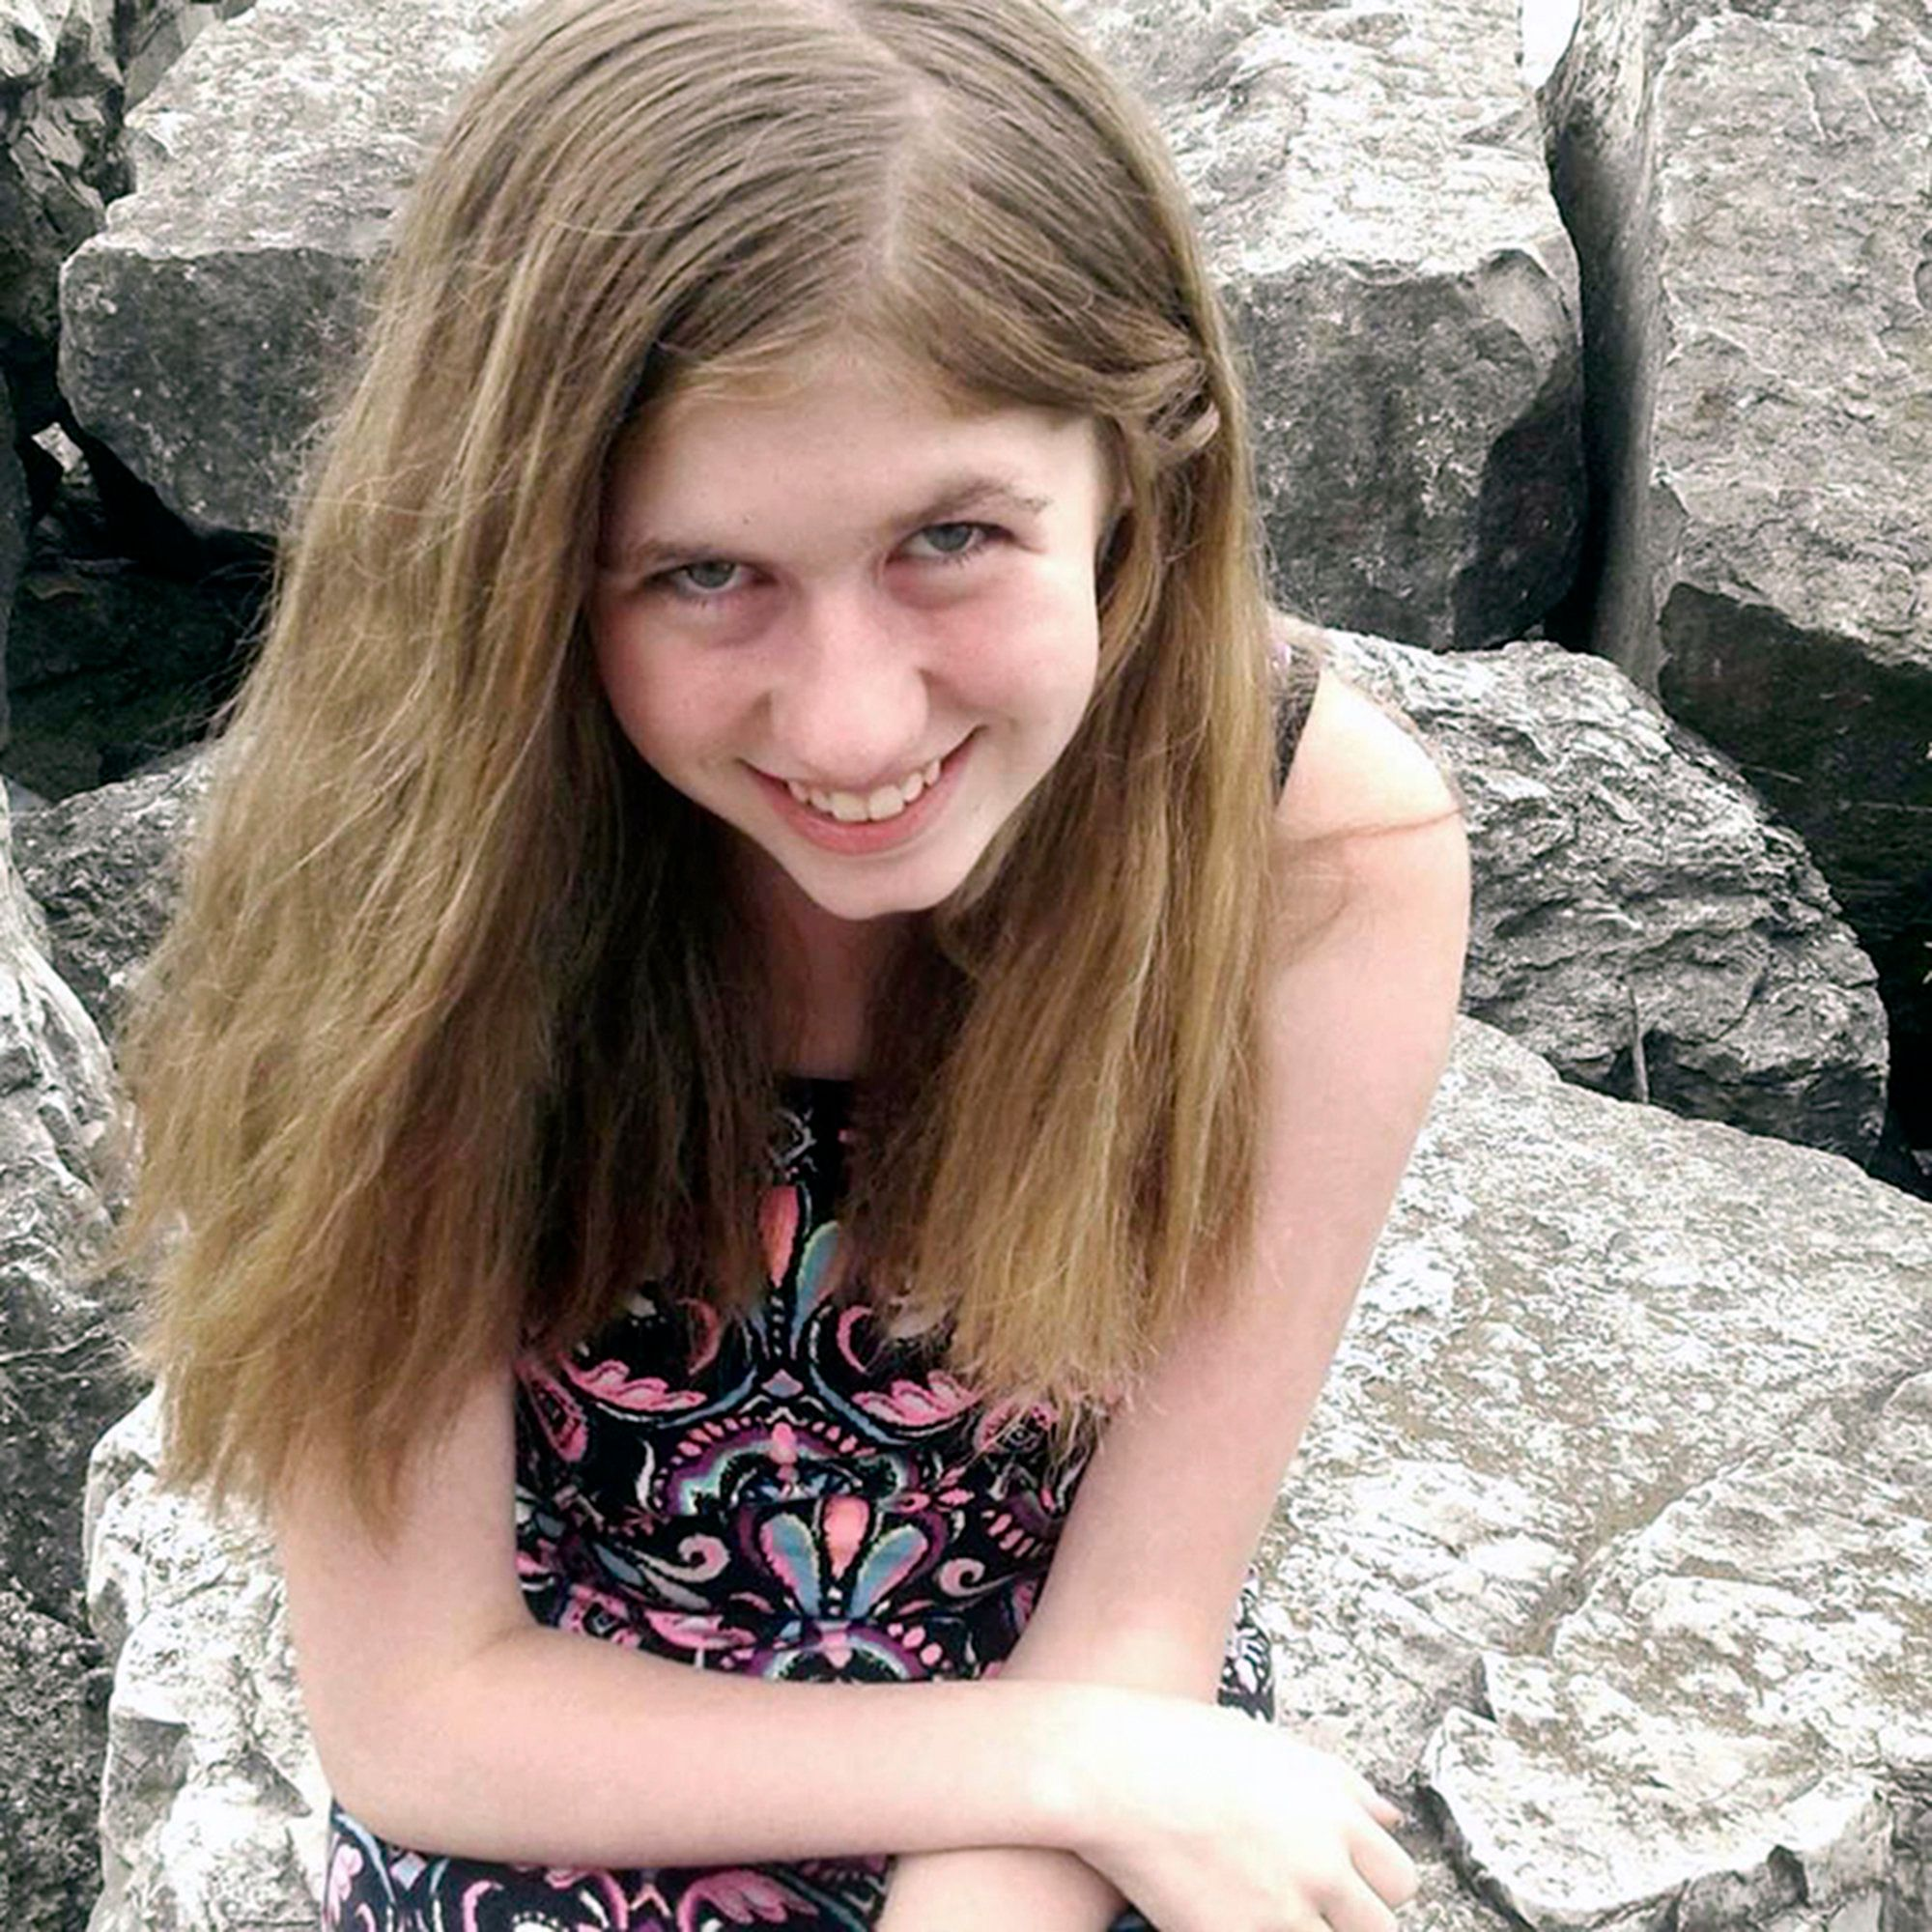 Jayme Closs has been missing since her parents were found shot to death on Oct. 15.